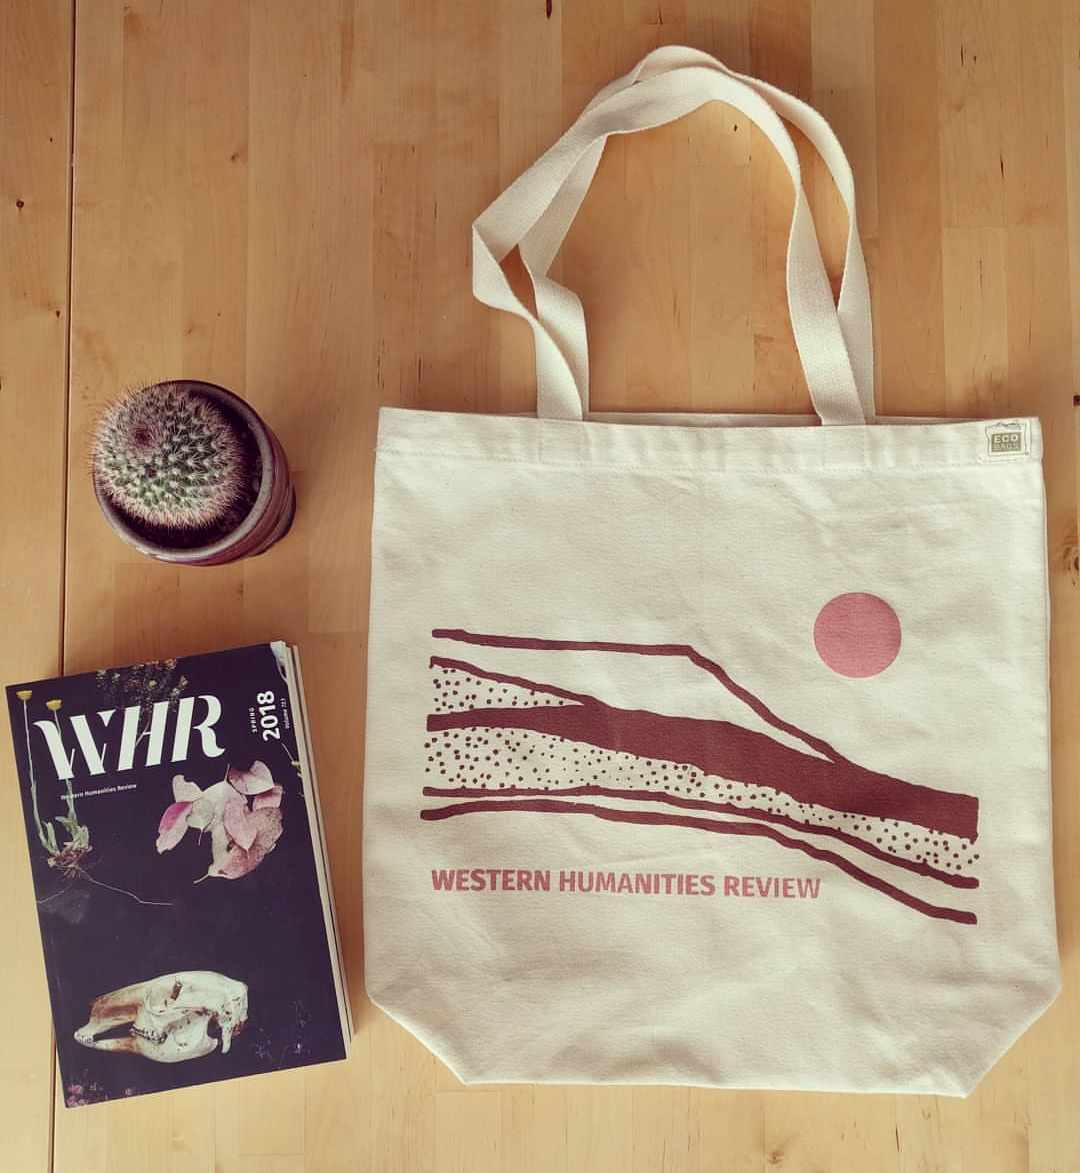 WHR tote bags courtney johnson little canyon press